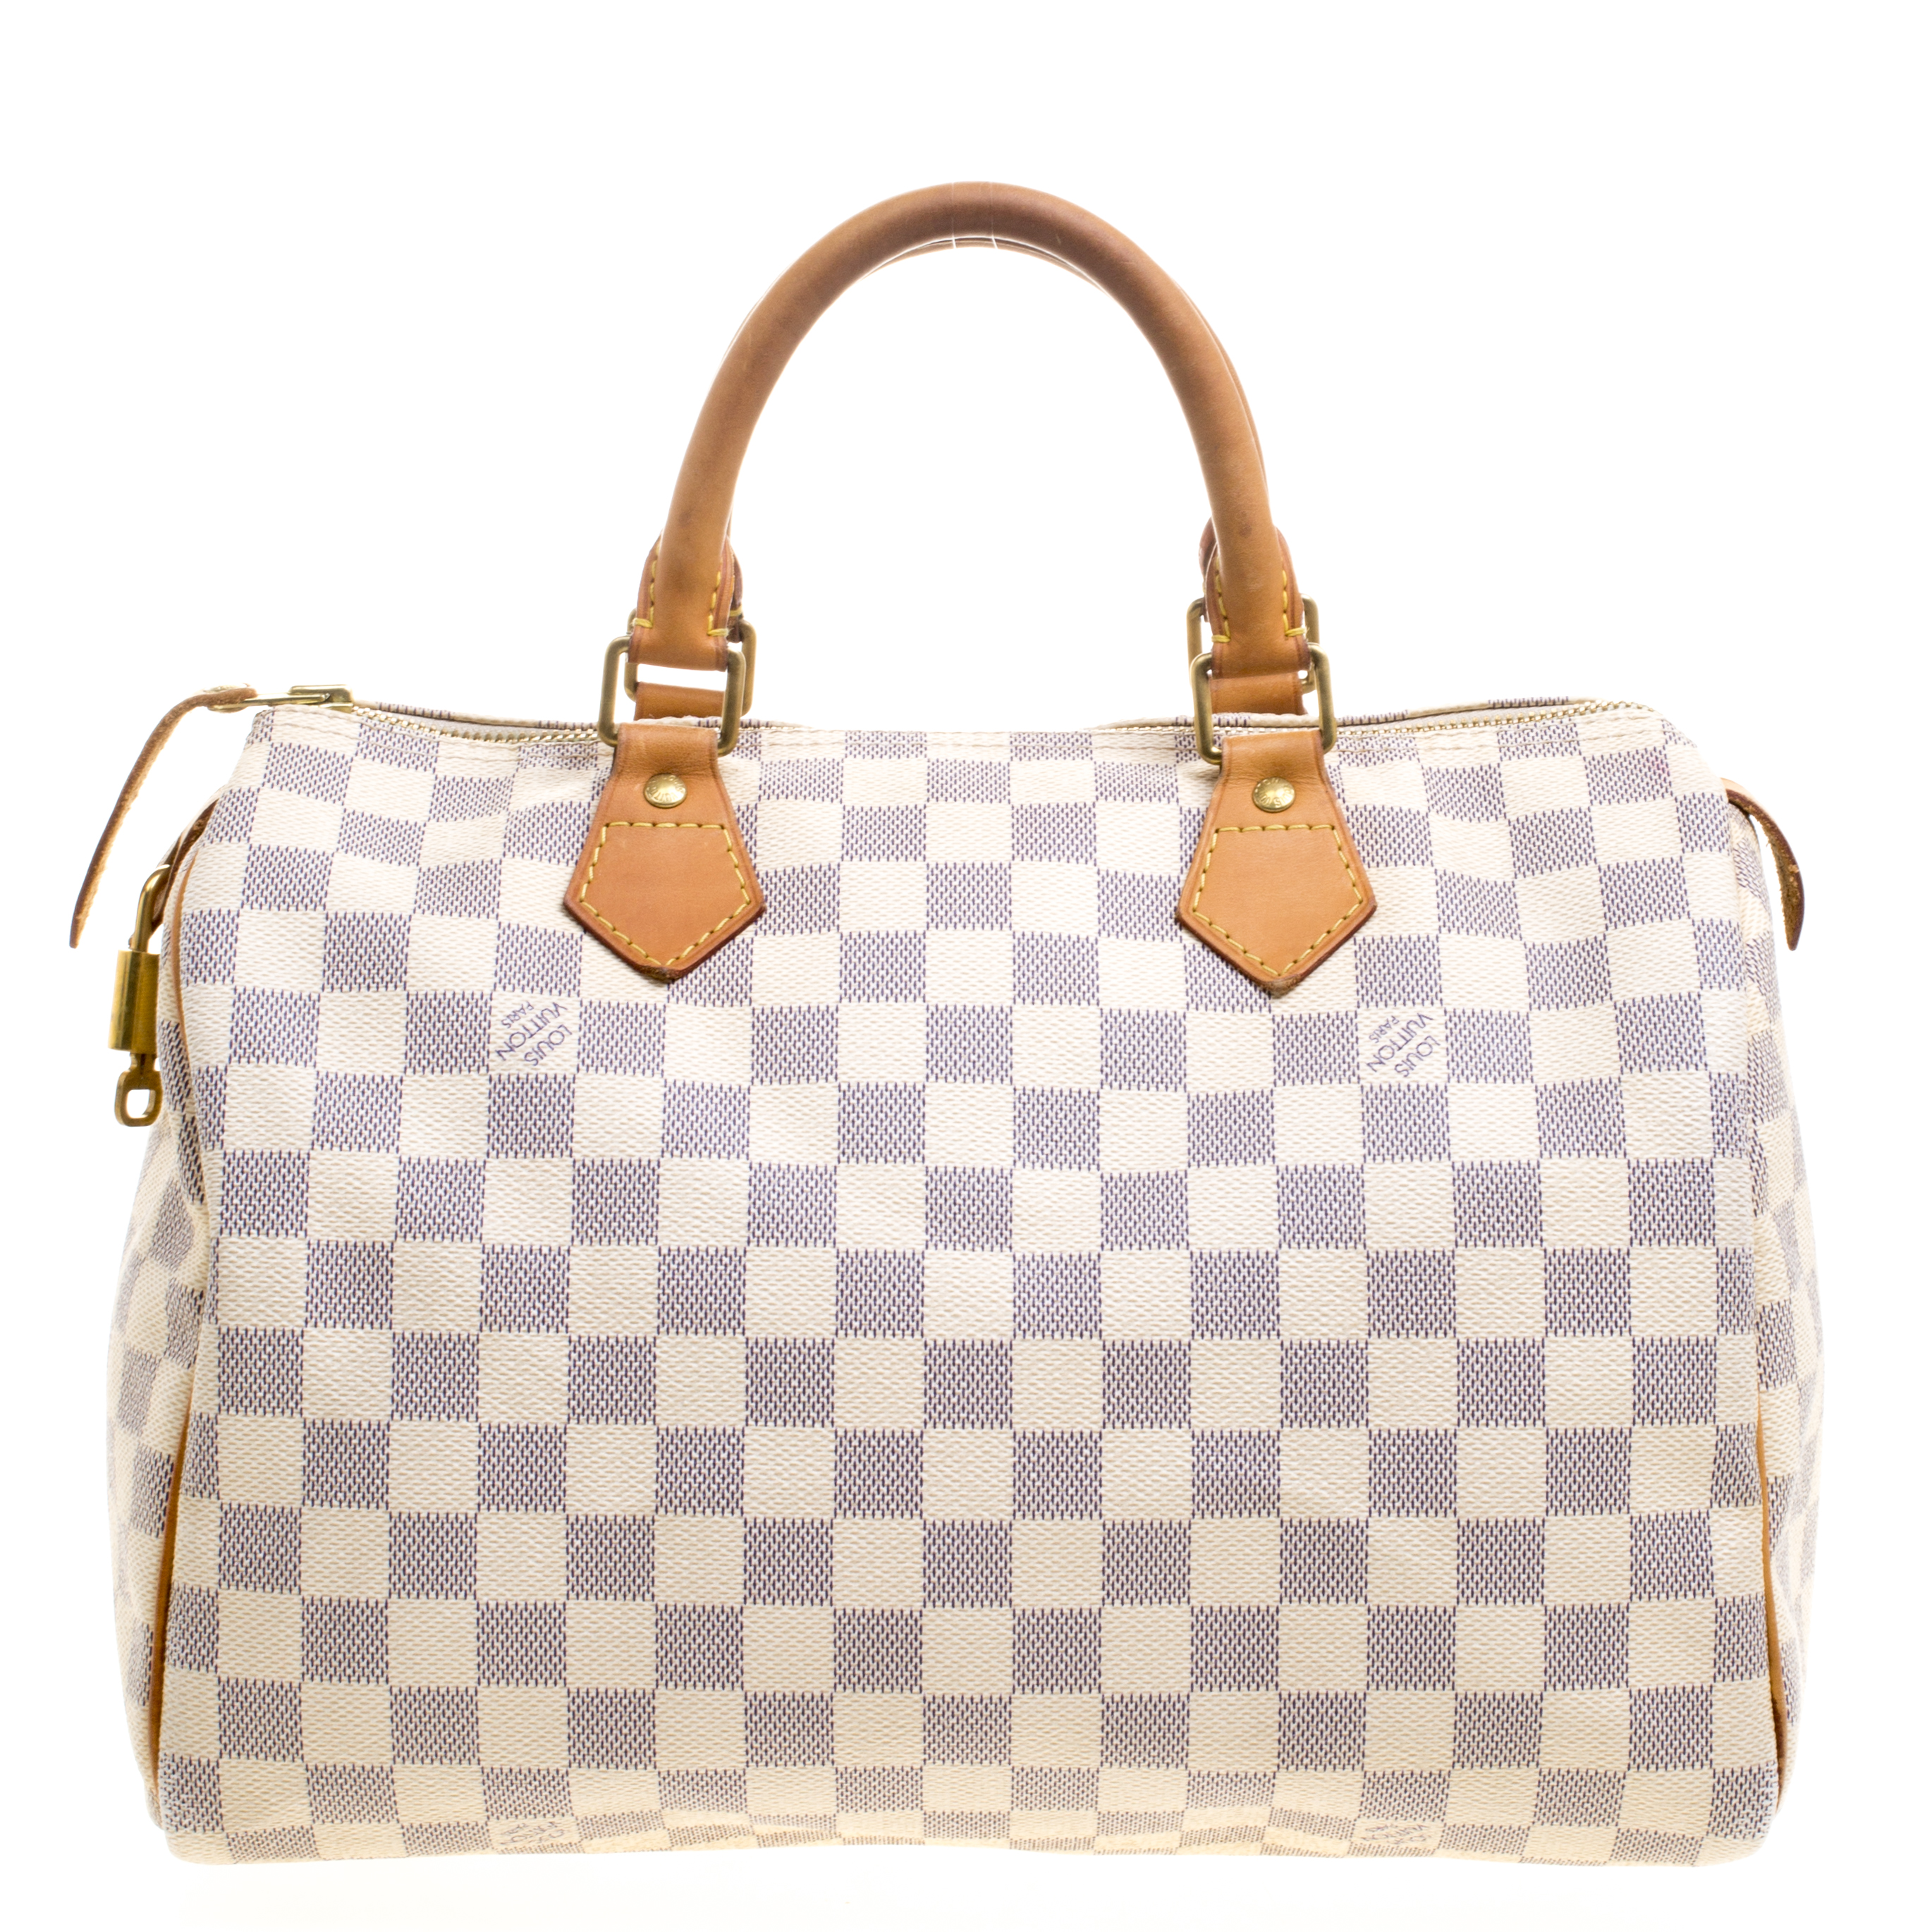 better price for pretty and colorful buy real Louis Vuitton Damier Azur Canvas Speedy 30